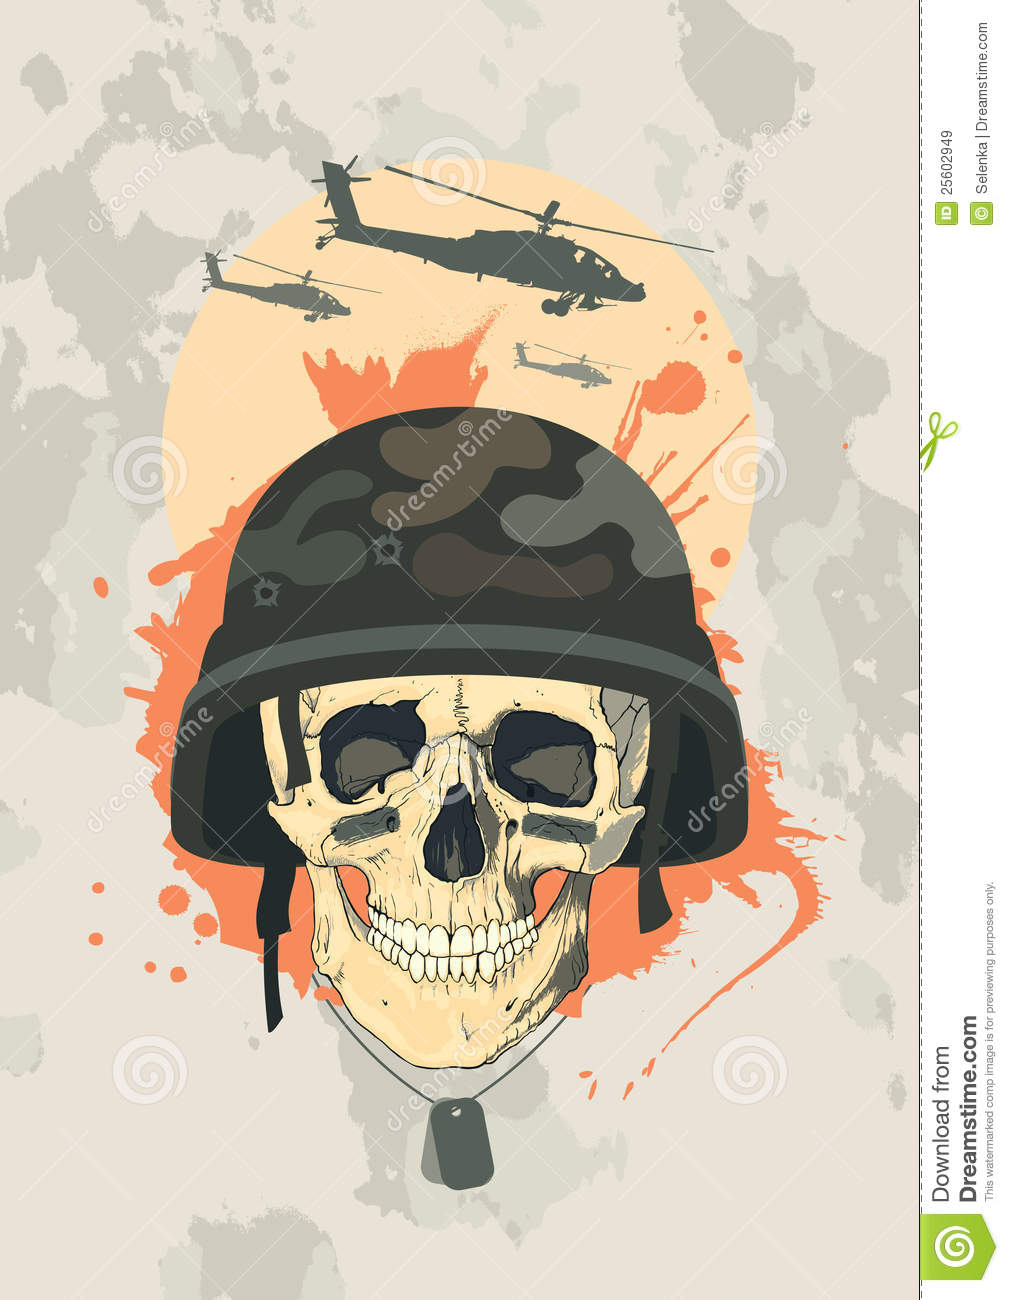 Military Design With Skull. Royalty Free Stock Images ...